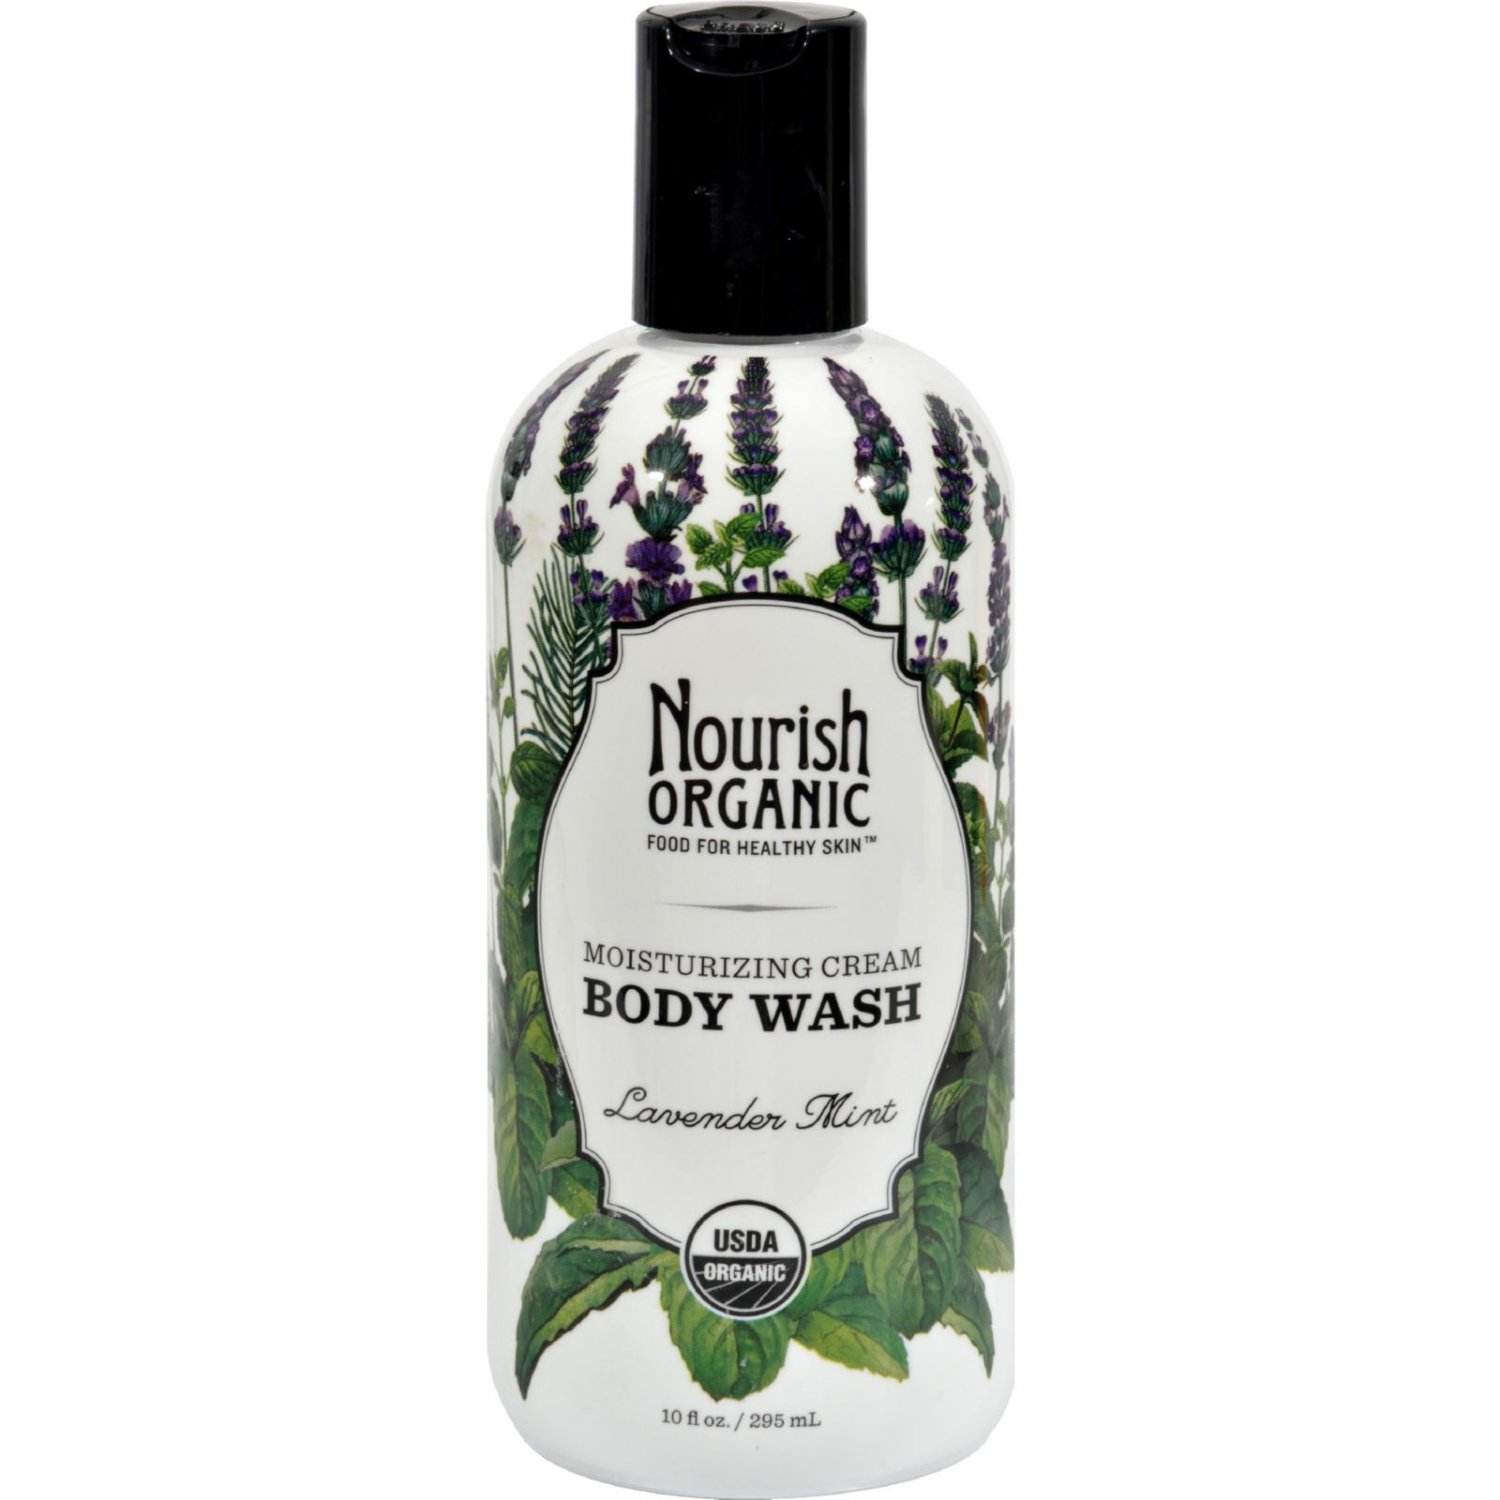 Nourish Organic Body Wash - Lavender Mint - 10 oz